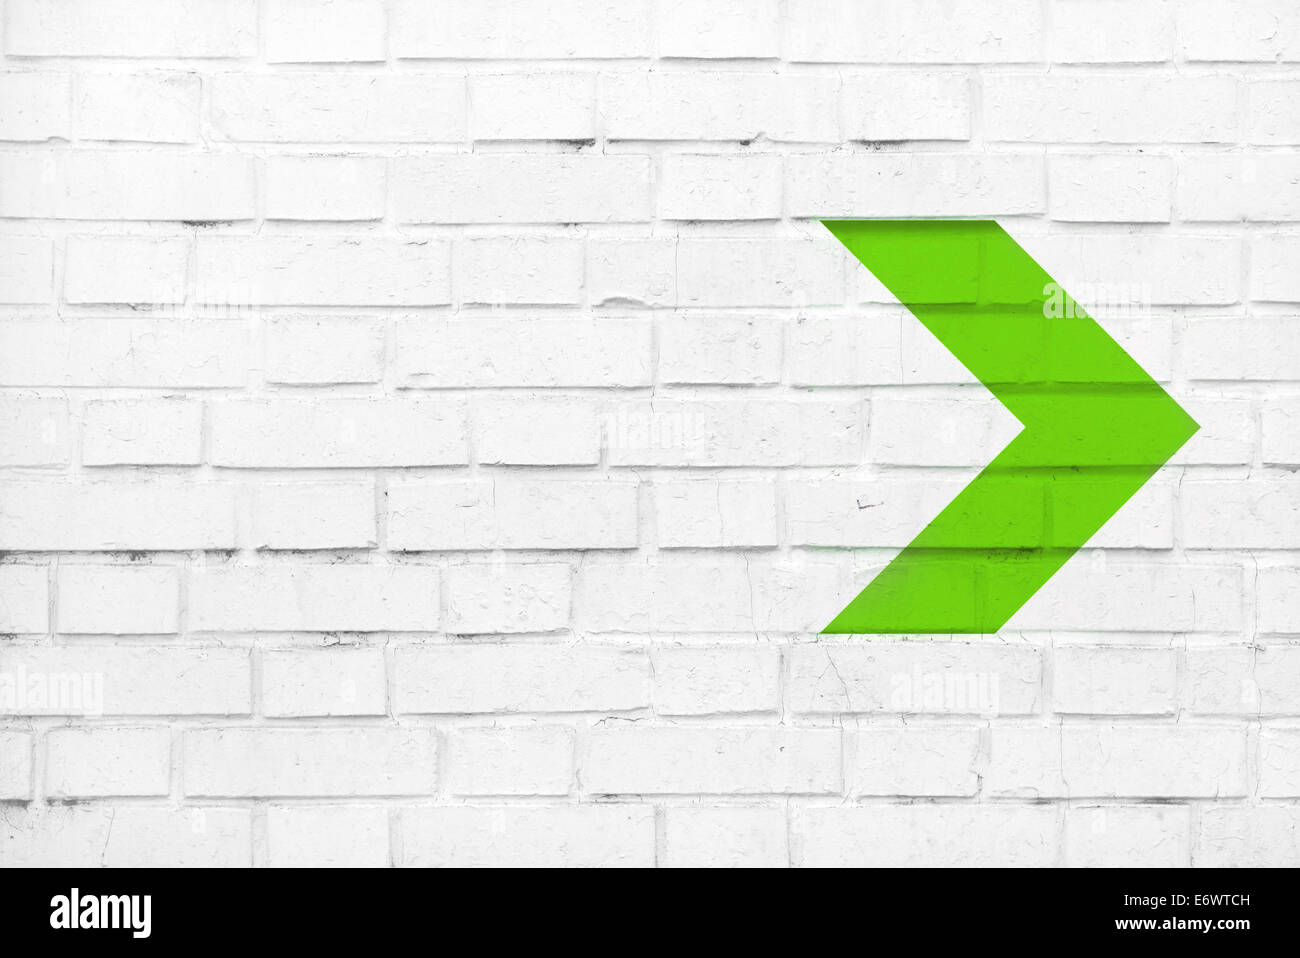 Green arrow on white wall, direction and guidance - Stock Image